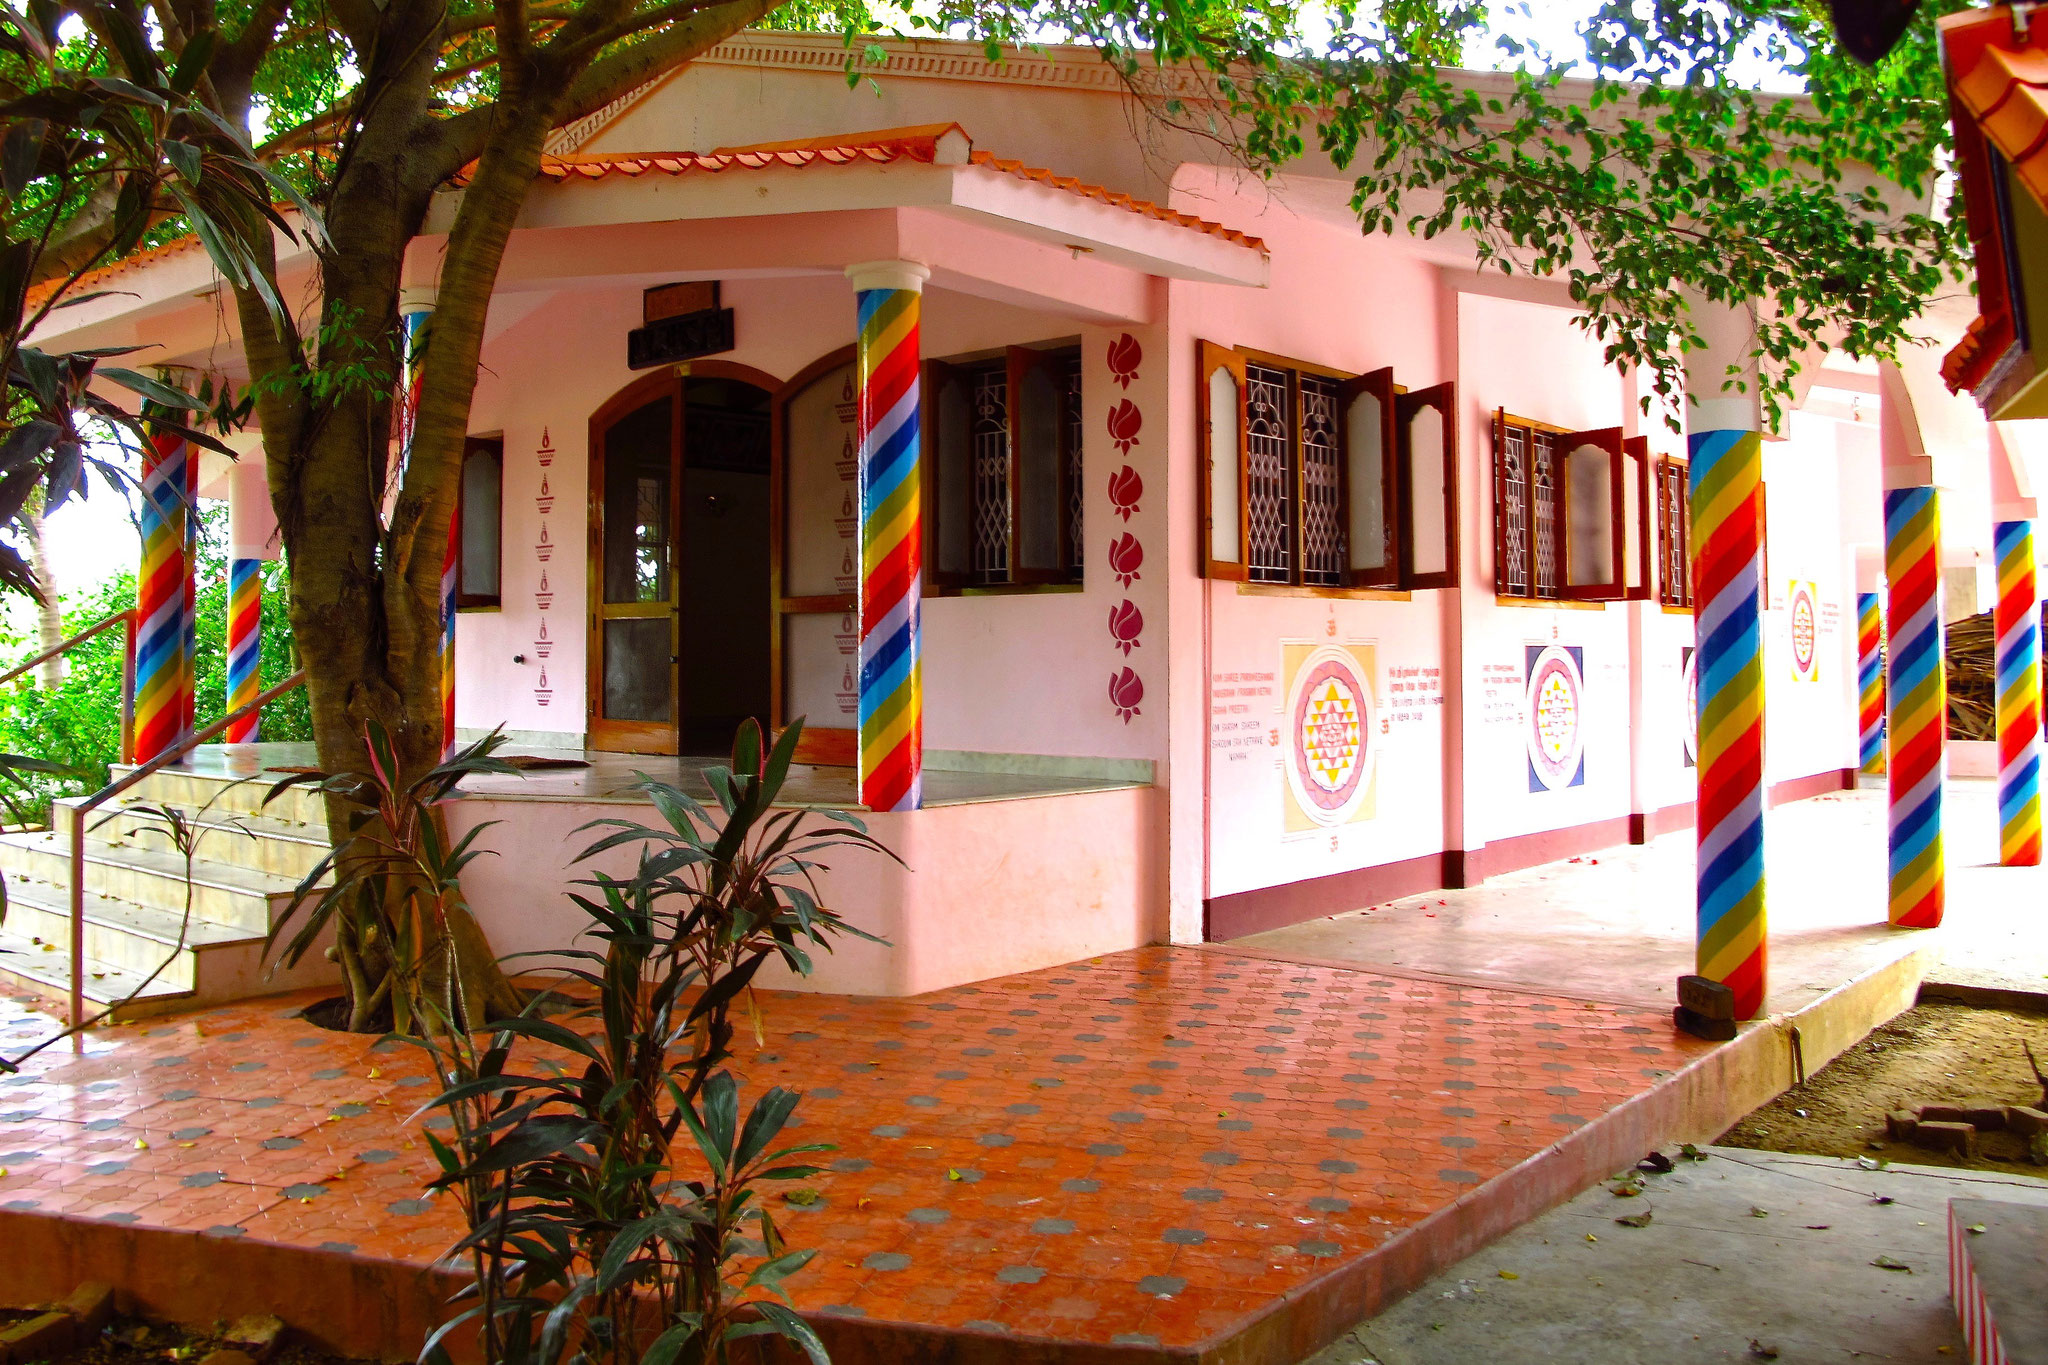 Prayer Hall - Aum Guru Prasad